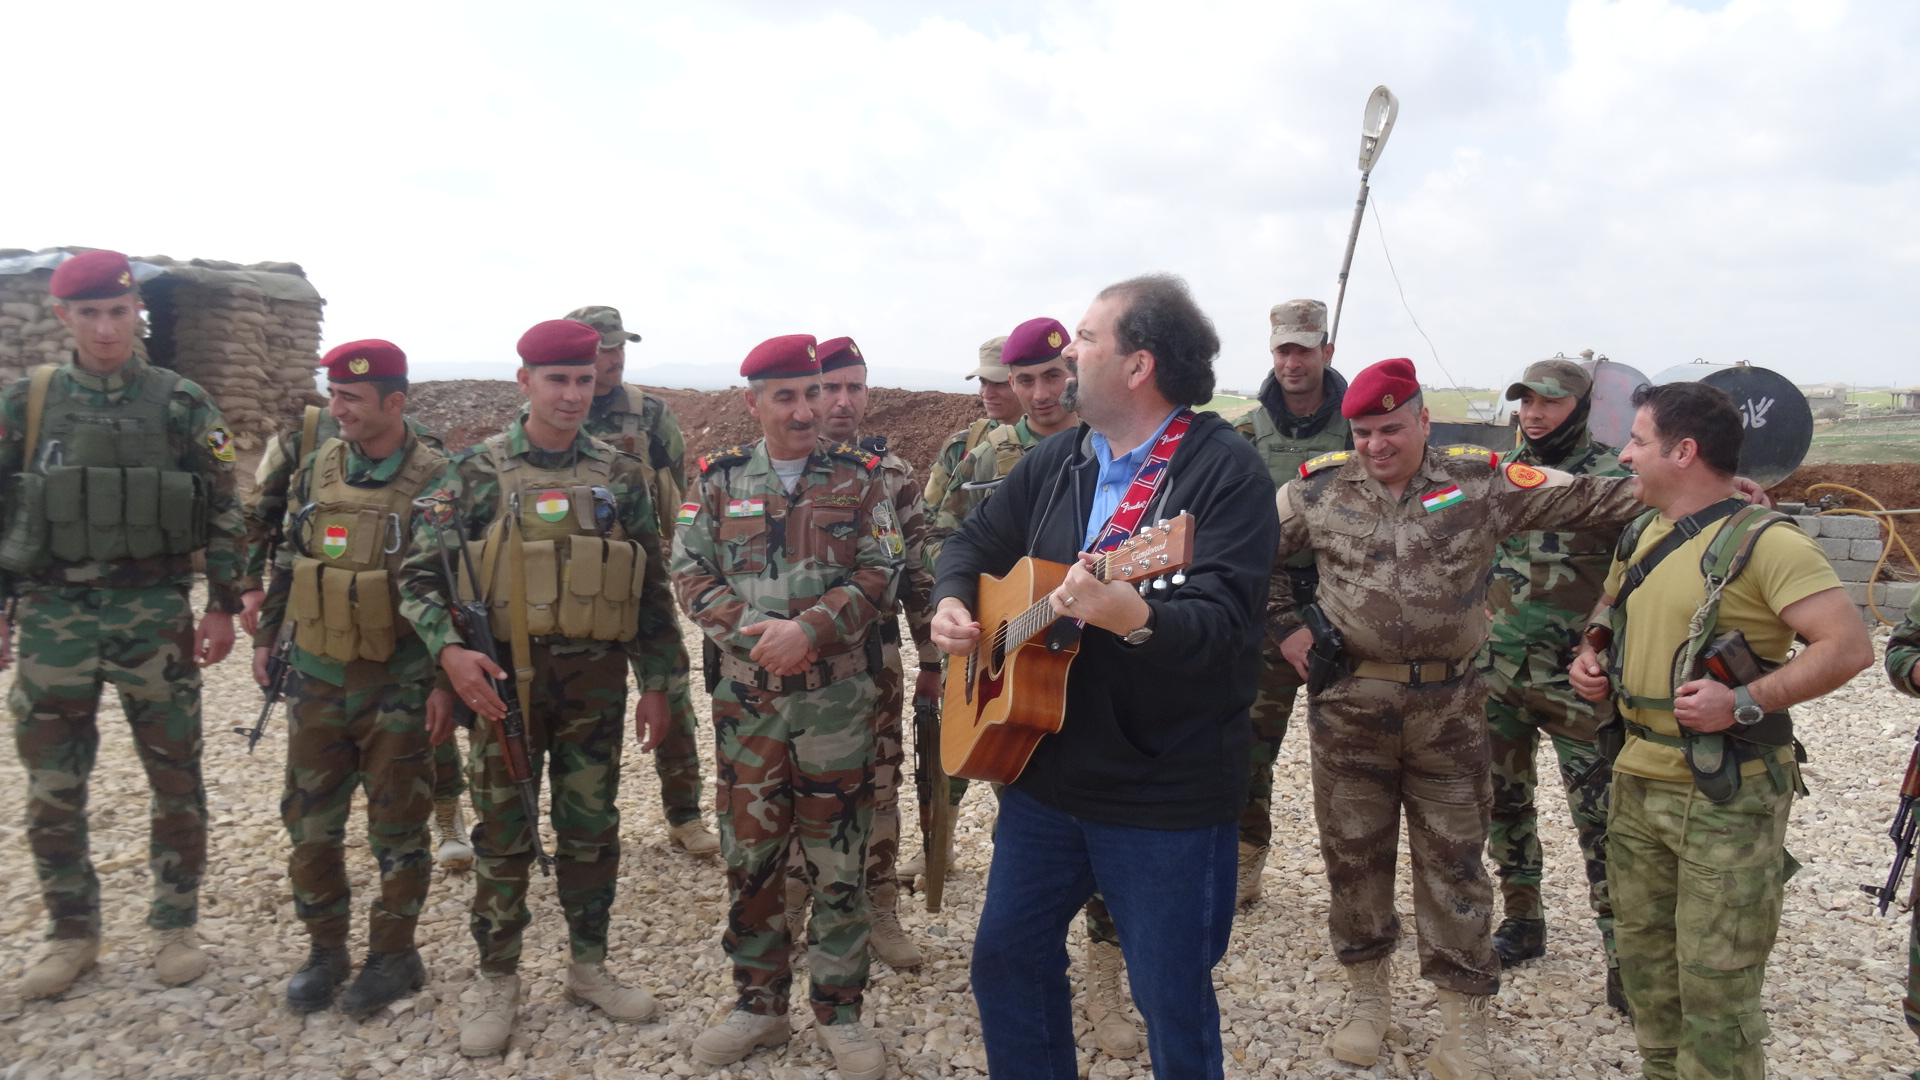 Randy entertains some members of the Pashmerga (Kurdish) army at the border